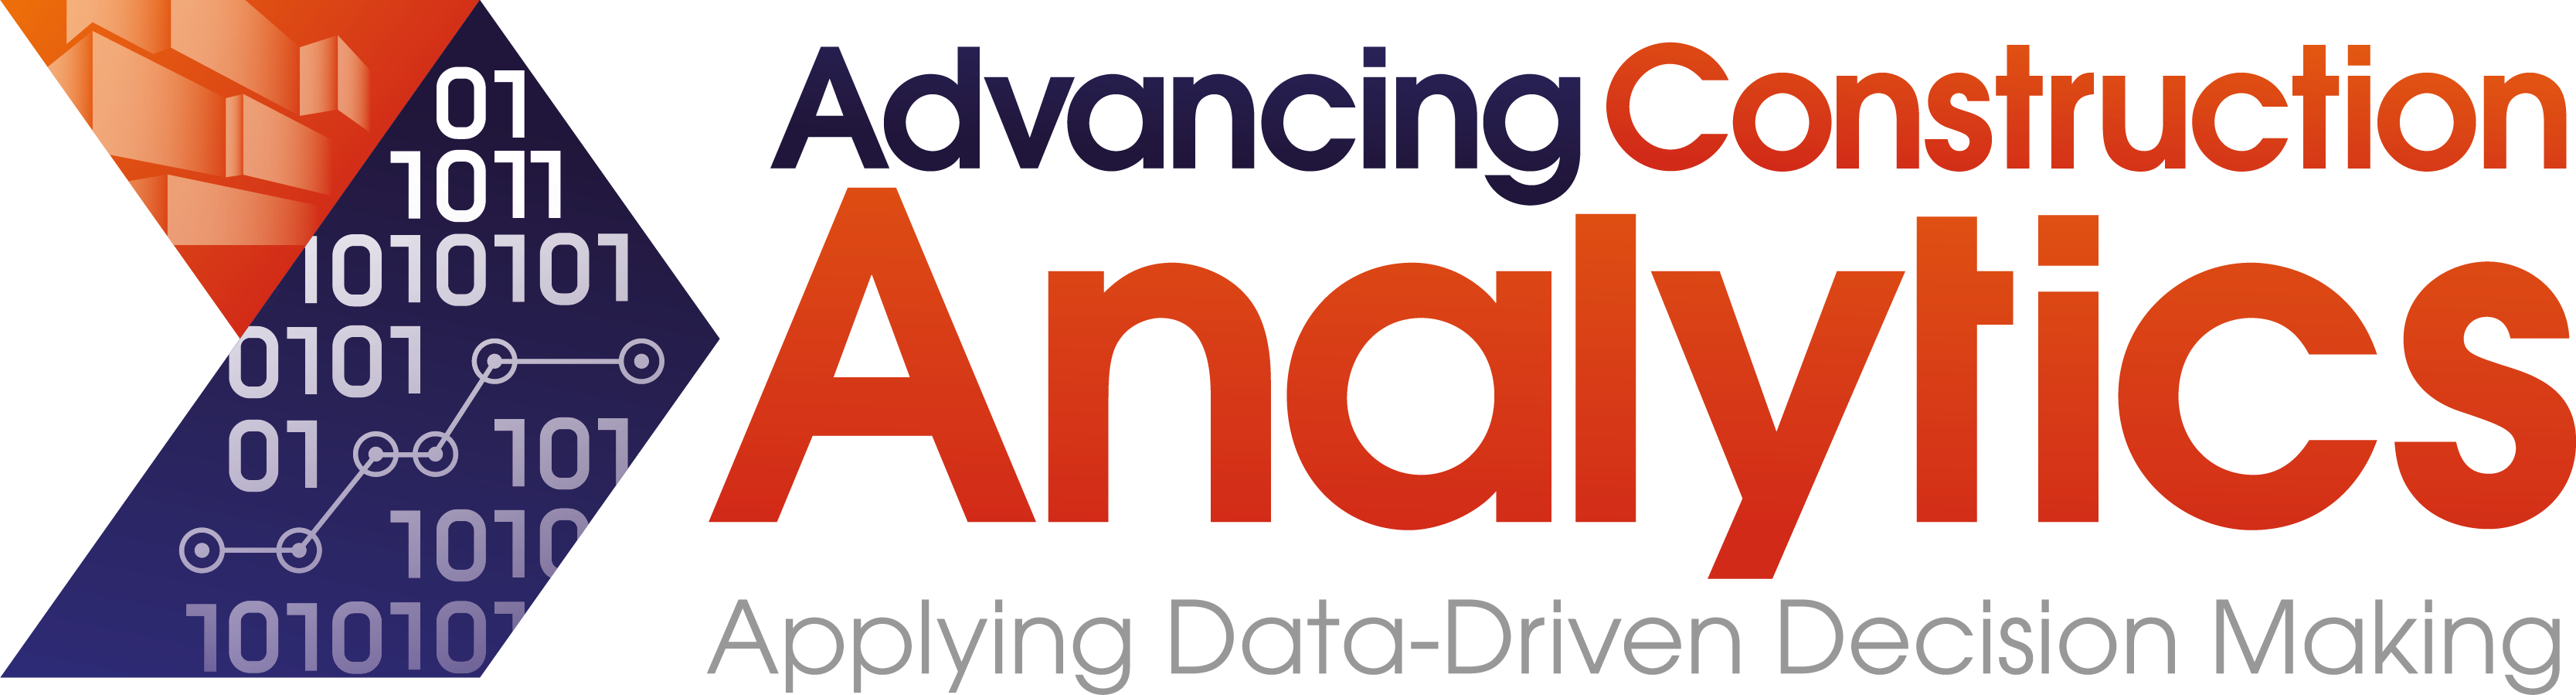 HW170312 Advancing Construction Analytics 2019 logo_Final